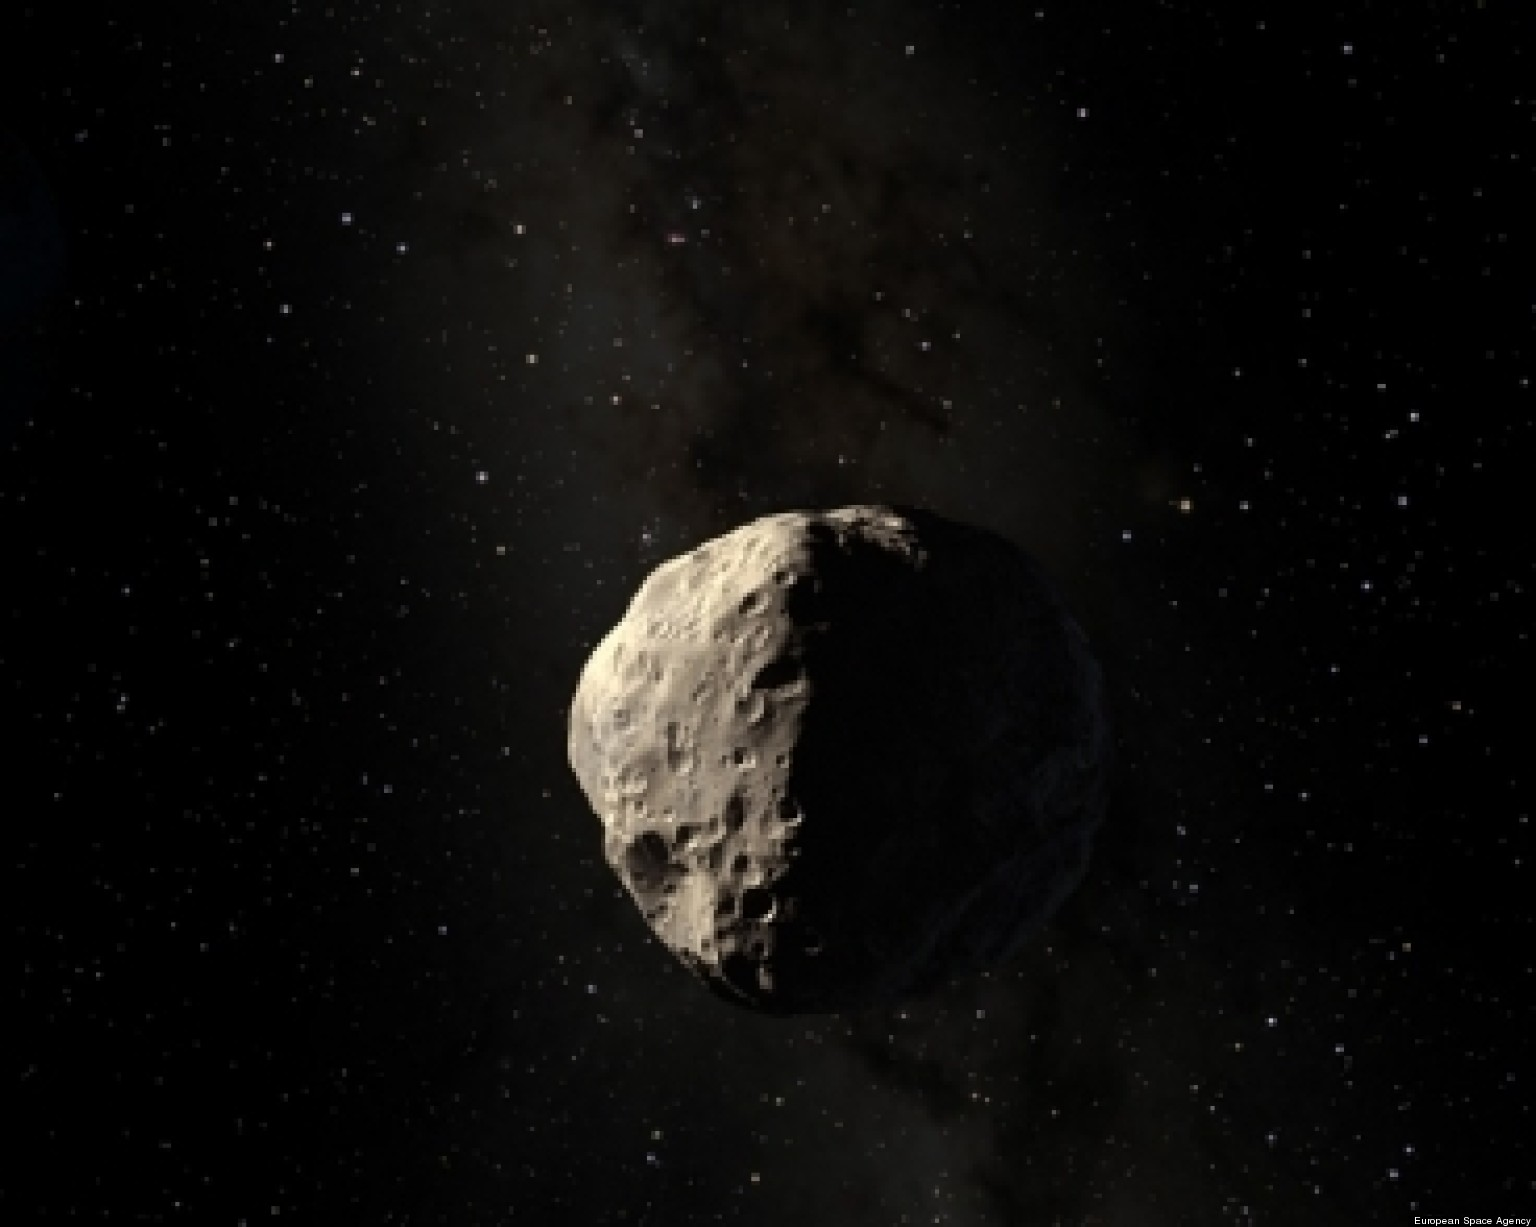 Apophis Asteroid Live: Watch Stream Of 'Doomsday' Object ...